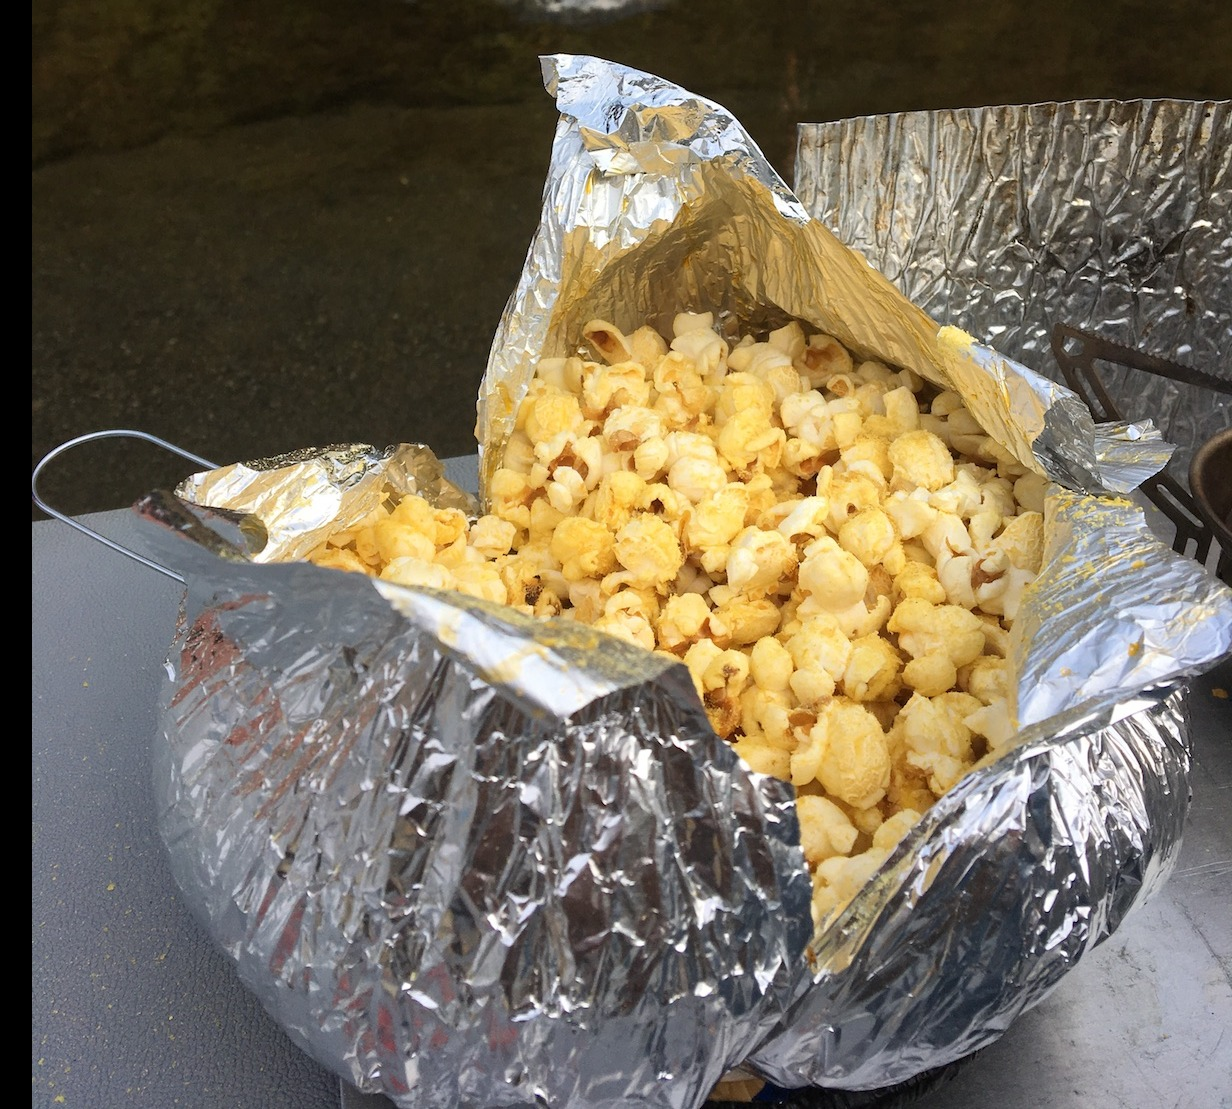 Popcorn wrapped in tinfoil